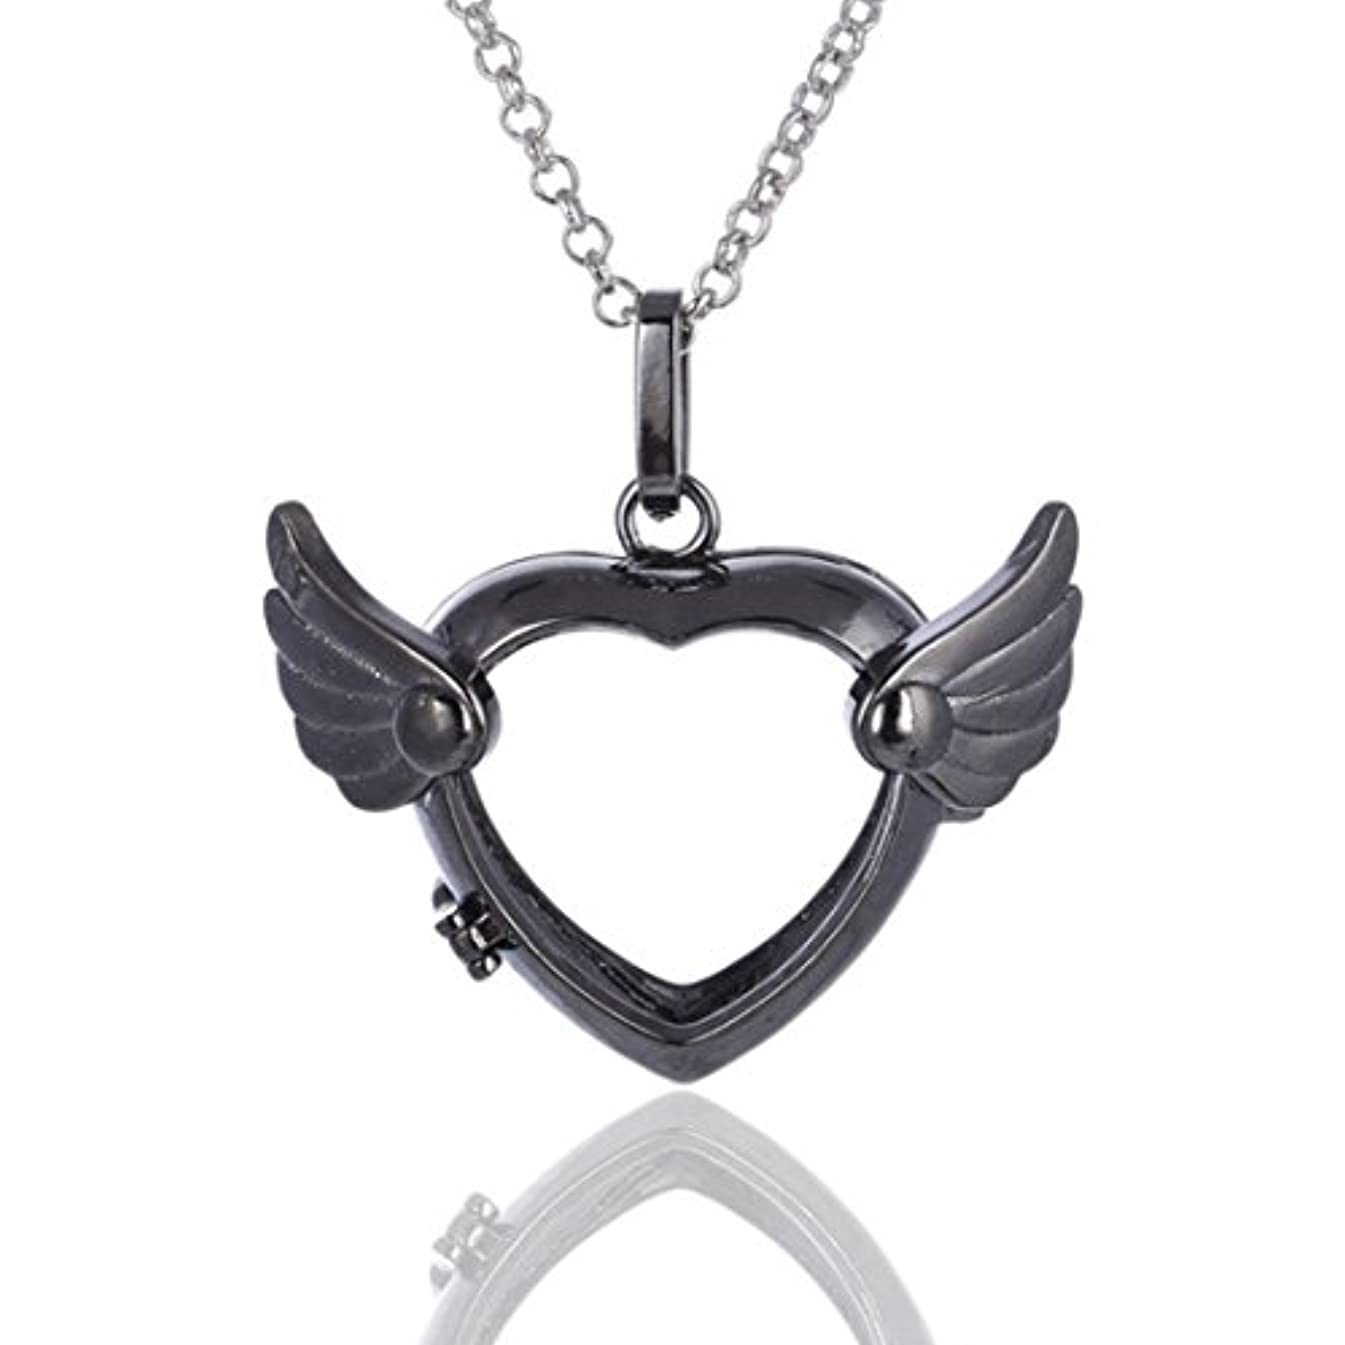 Love Heart Angel Wingsロケットペンダント、Aromatherapy Essential Oil Diffuserネックレス、シルバー、ブラック、ゴールド